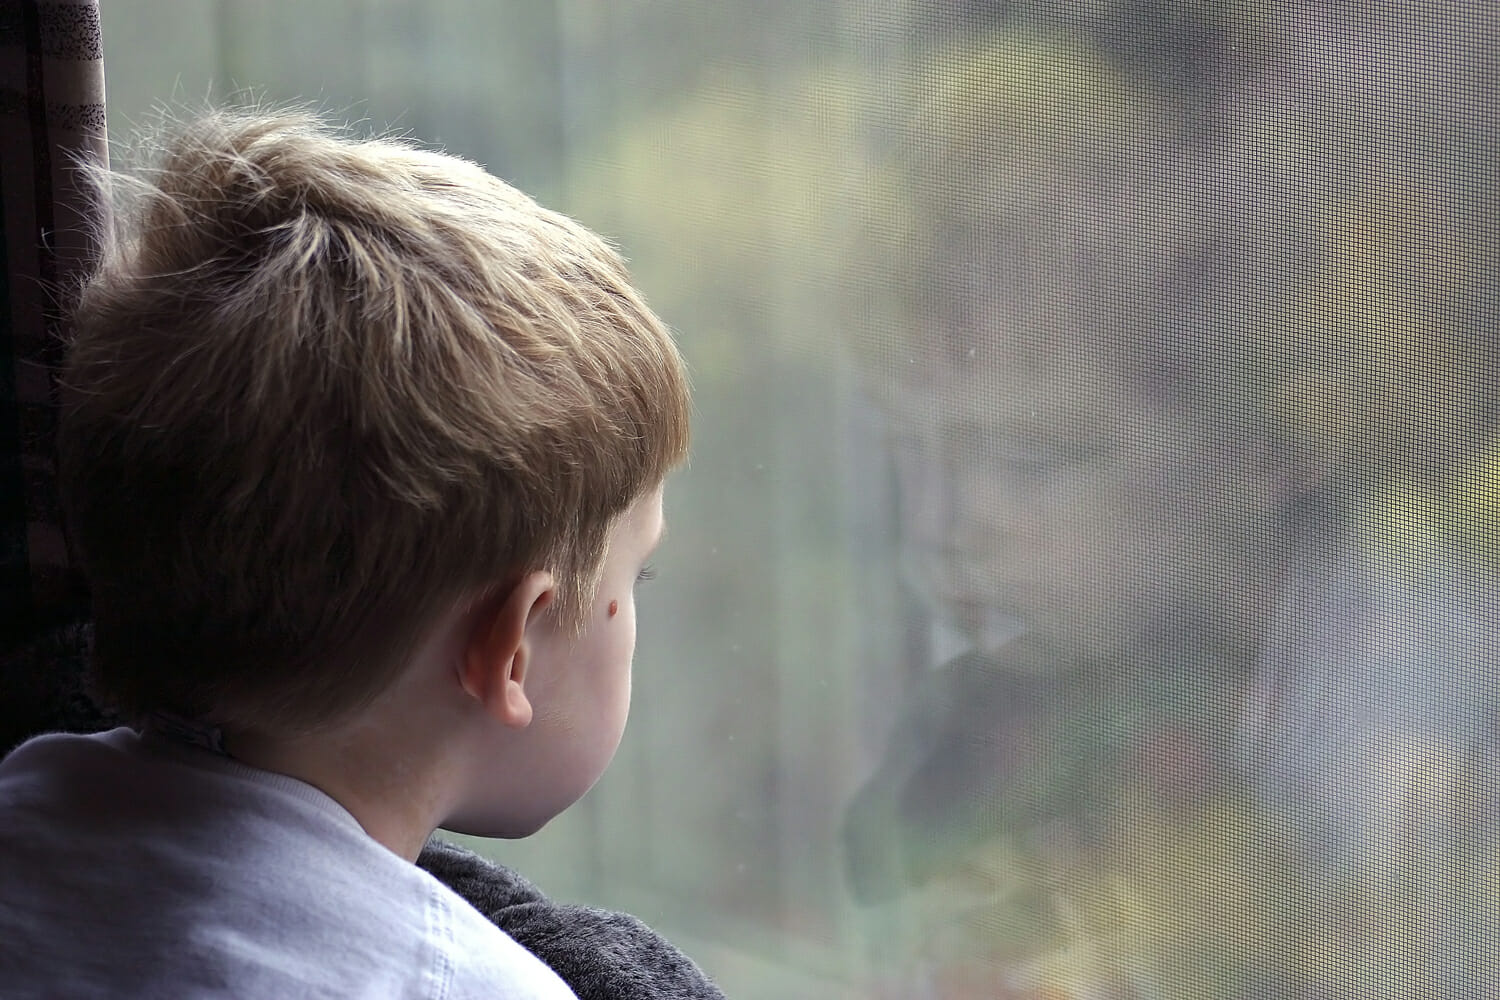 facts and stats about fatherlessness